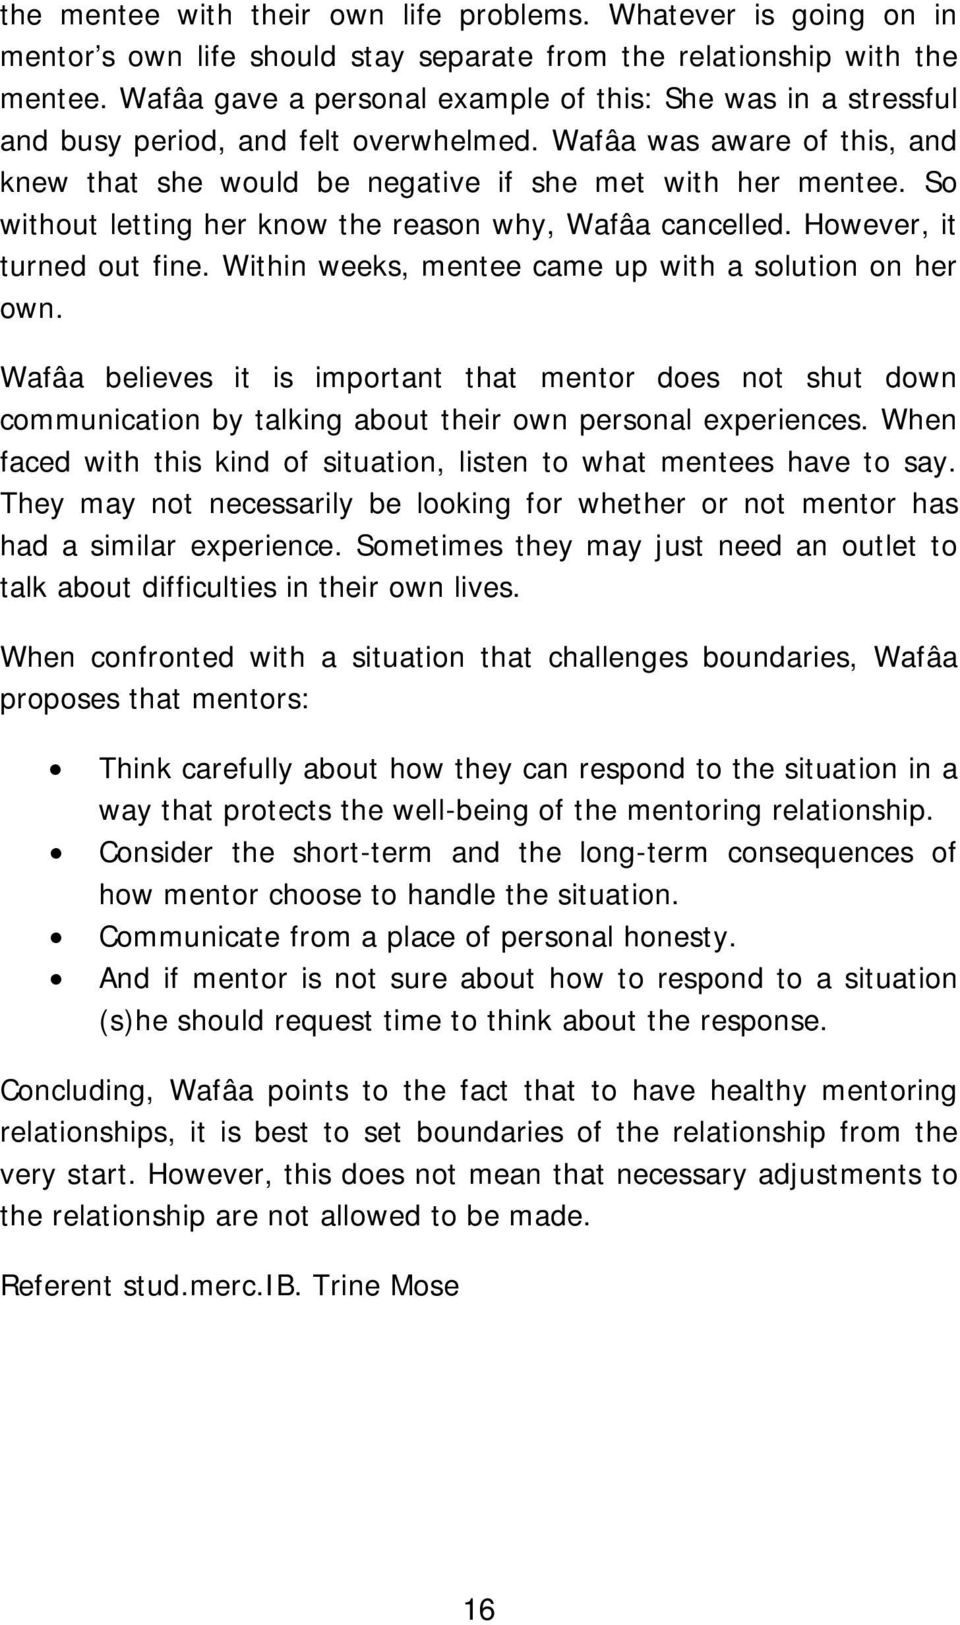 So without letting her know the reason why, Wafâa cancelled. However, it turned out fine. Within weeks, mentee came up with a solution on her own.